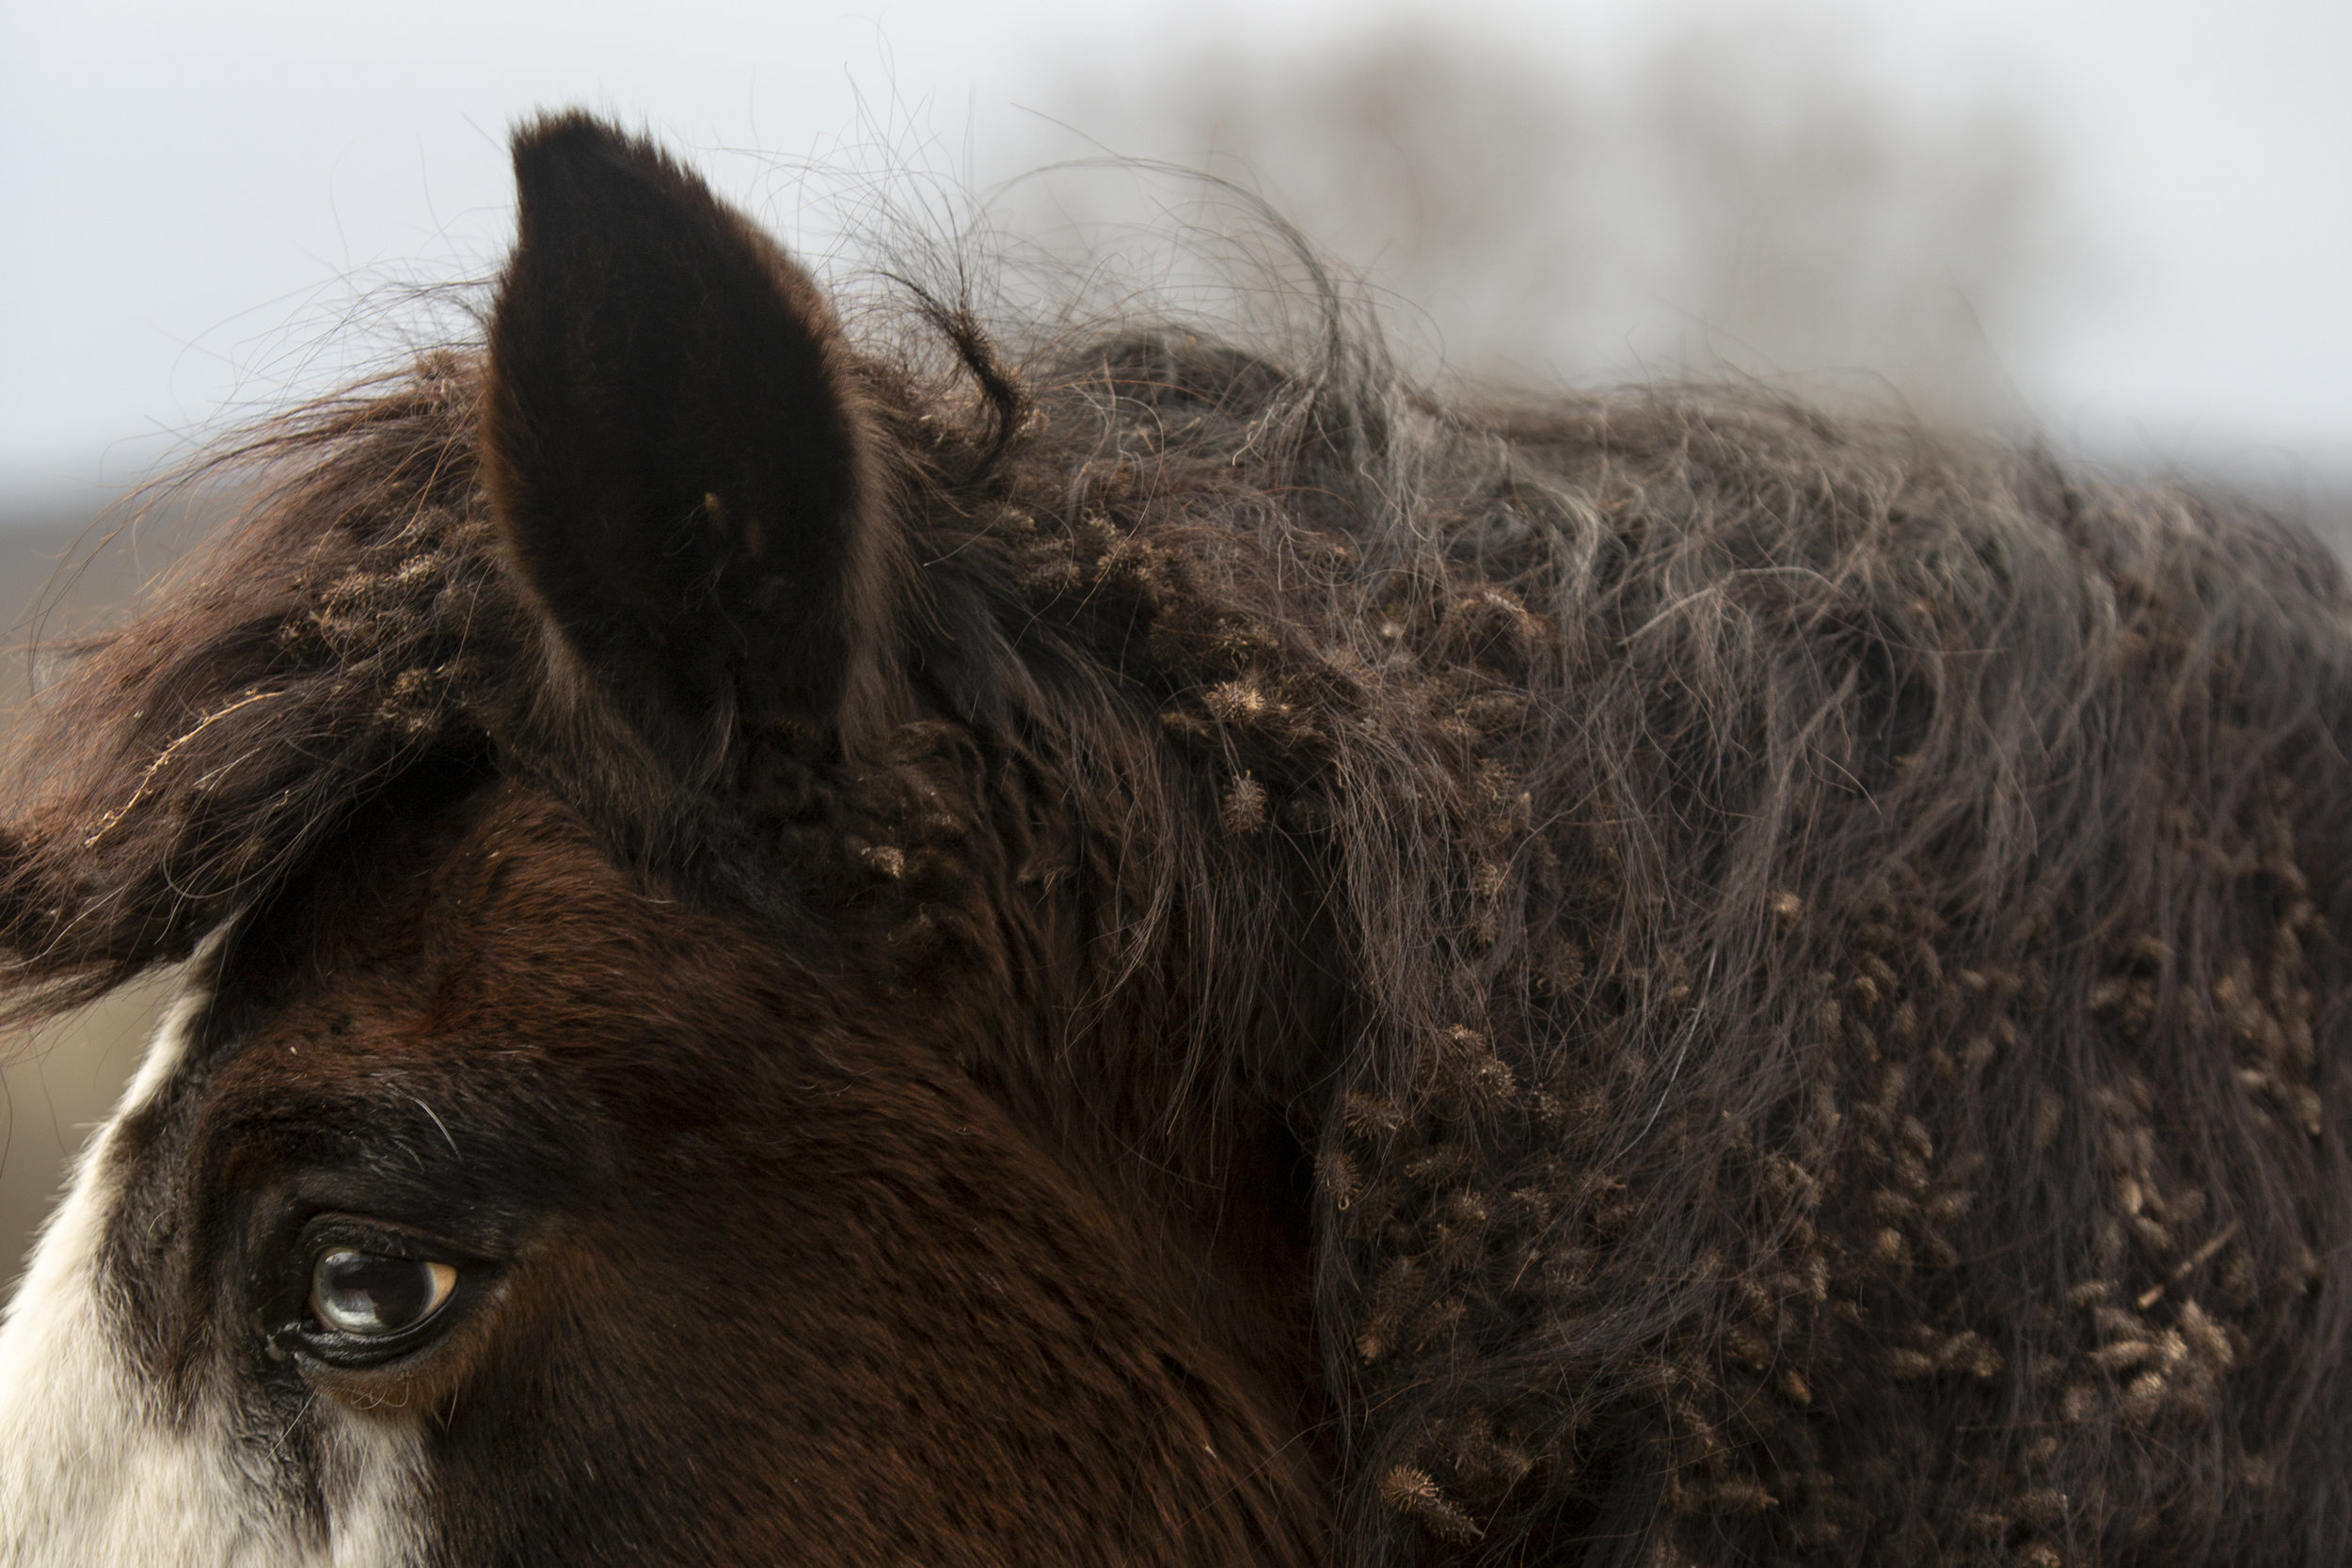 Though he is looked after by family and friends, the burs knotted in Chief's mane signify a decline in attention since his owner moved away over ten years ago. Many residents of Sharpsburg leave the community in search of better work prospects.